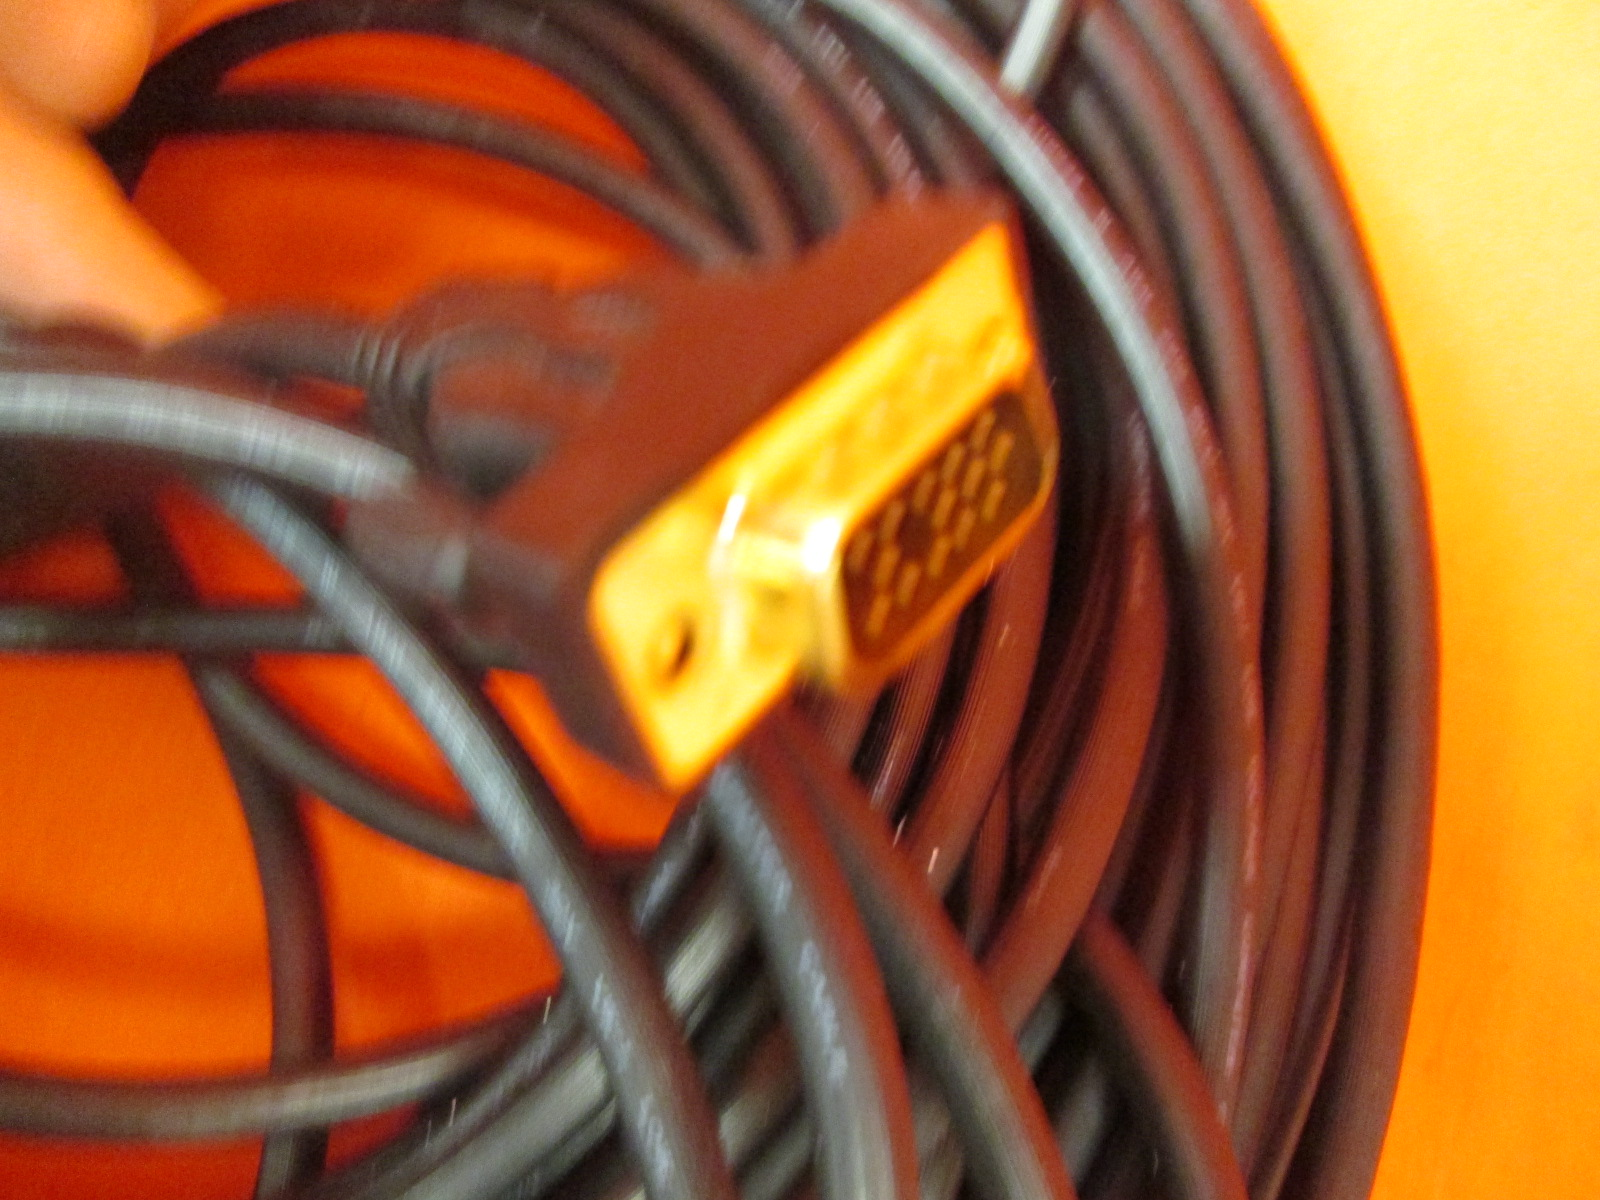 Image 1 of VGA To VGA Cable Svga Cable 50 Feet Available 3FT 100 Ft In Length